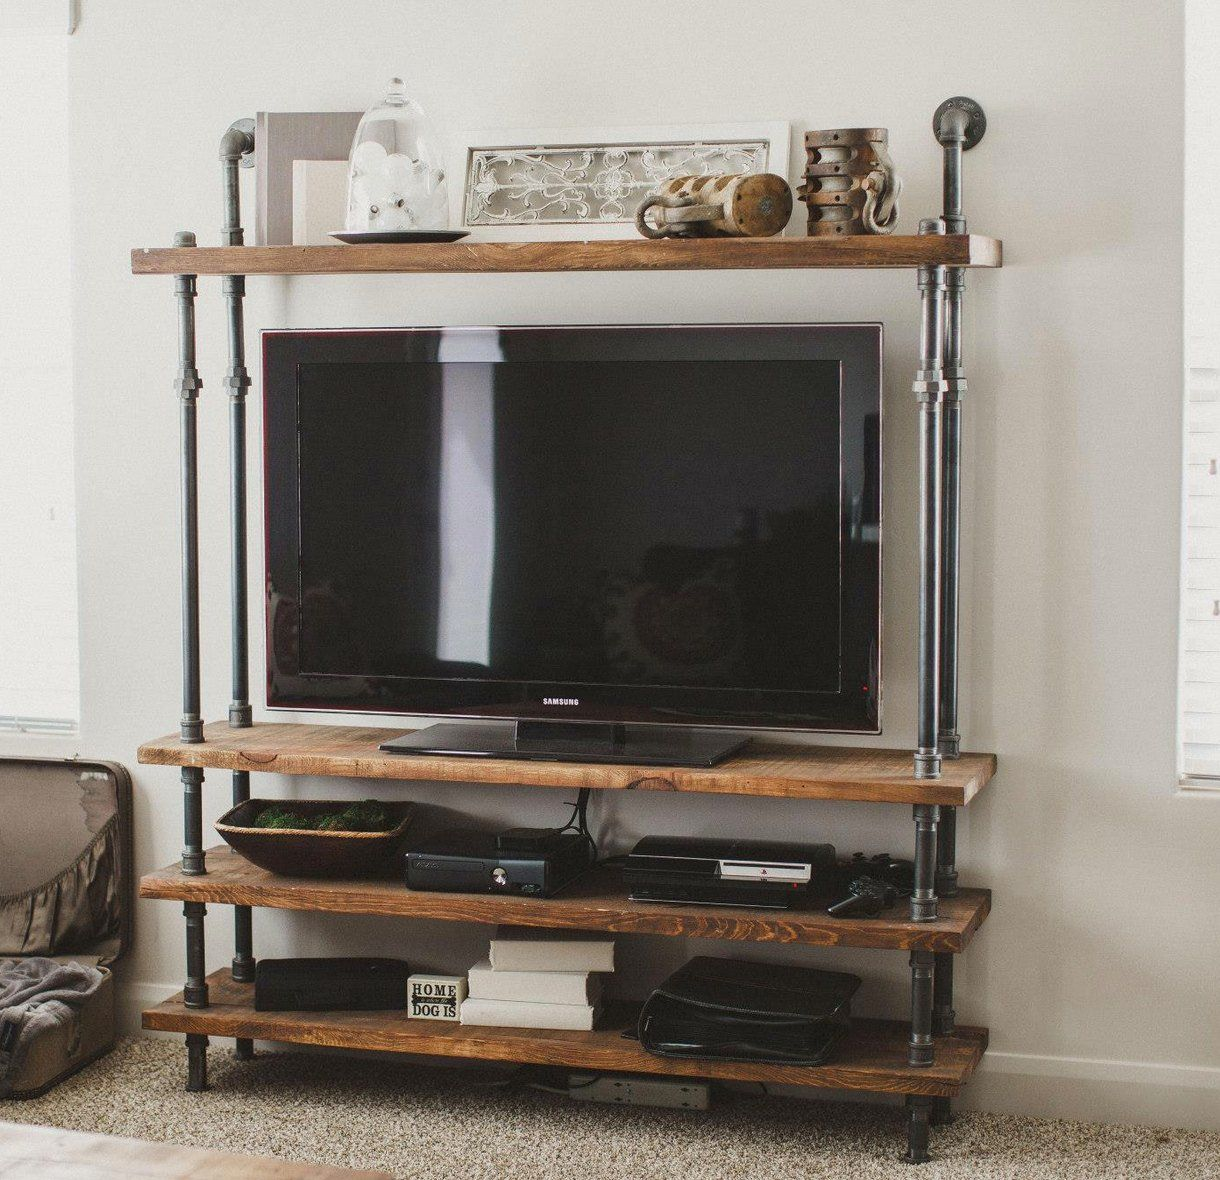 Furniture, Cool DIY Homemade Industrial TV Stands Made From Wood And Pipe  With Bookshelf And